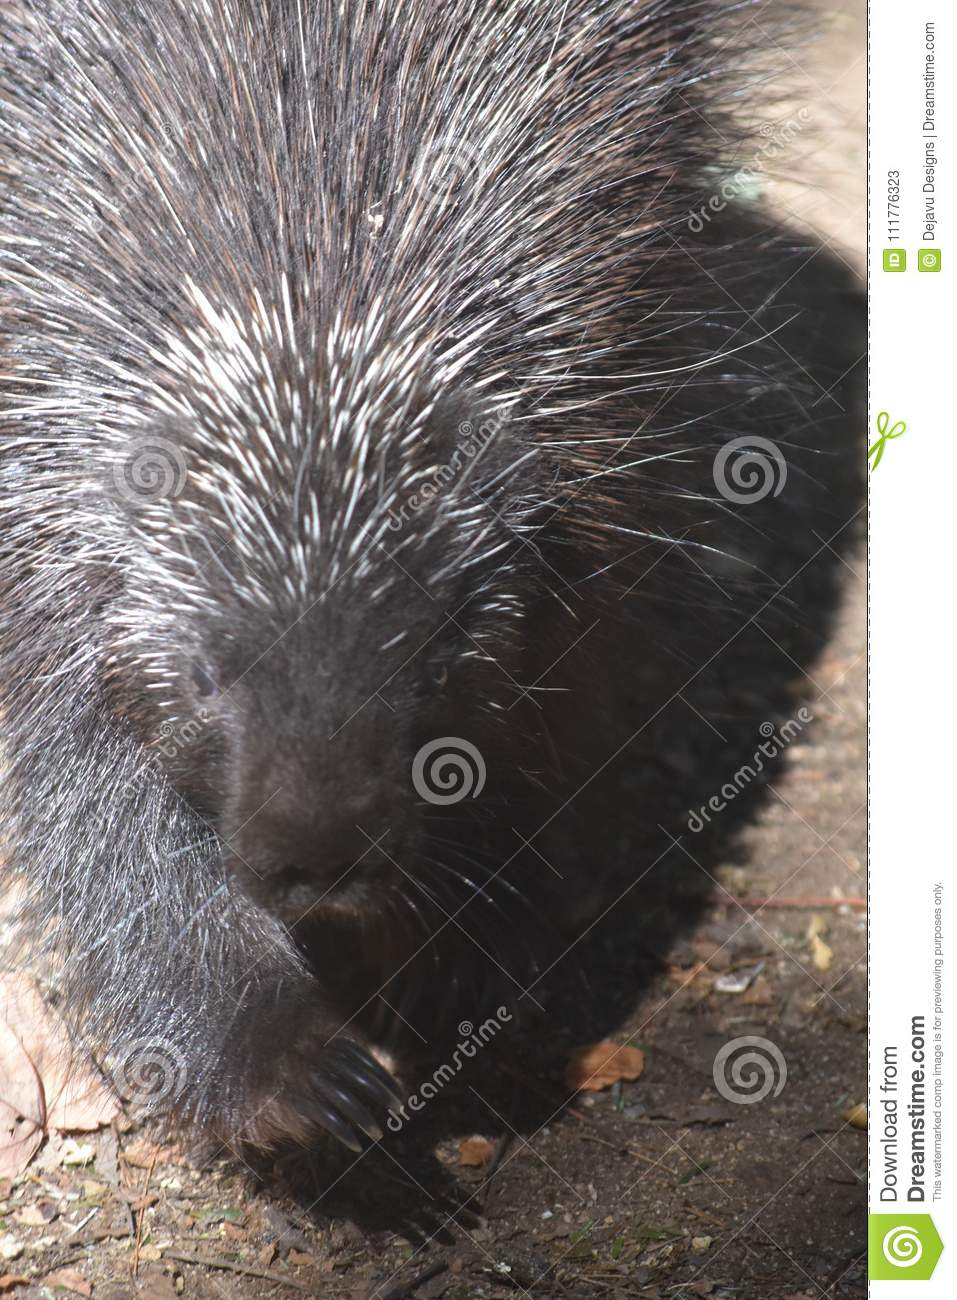 North american porcupine with black and white quills